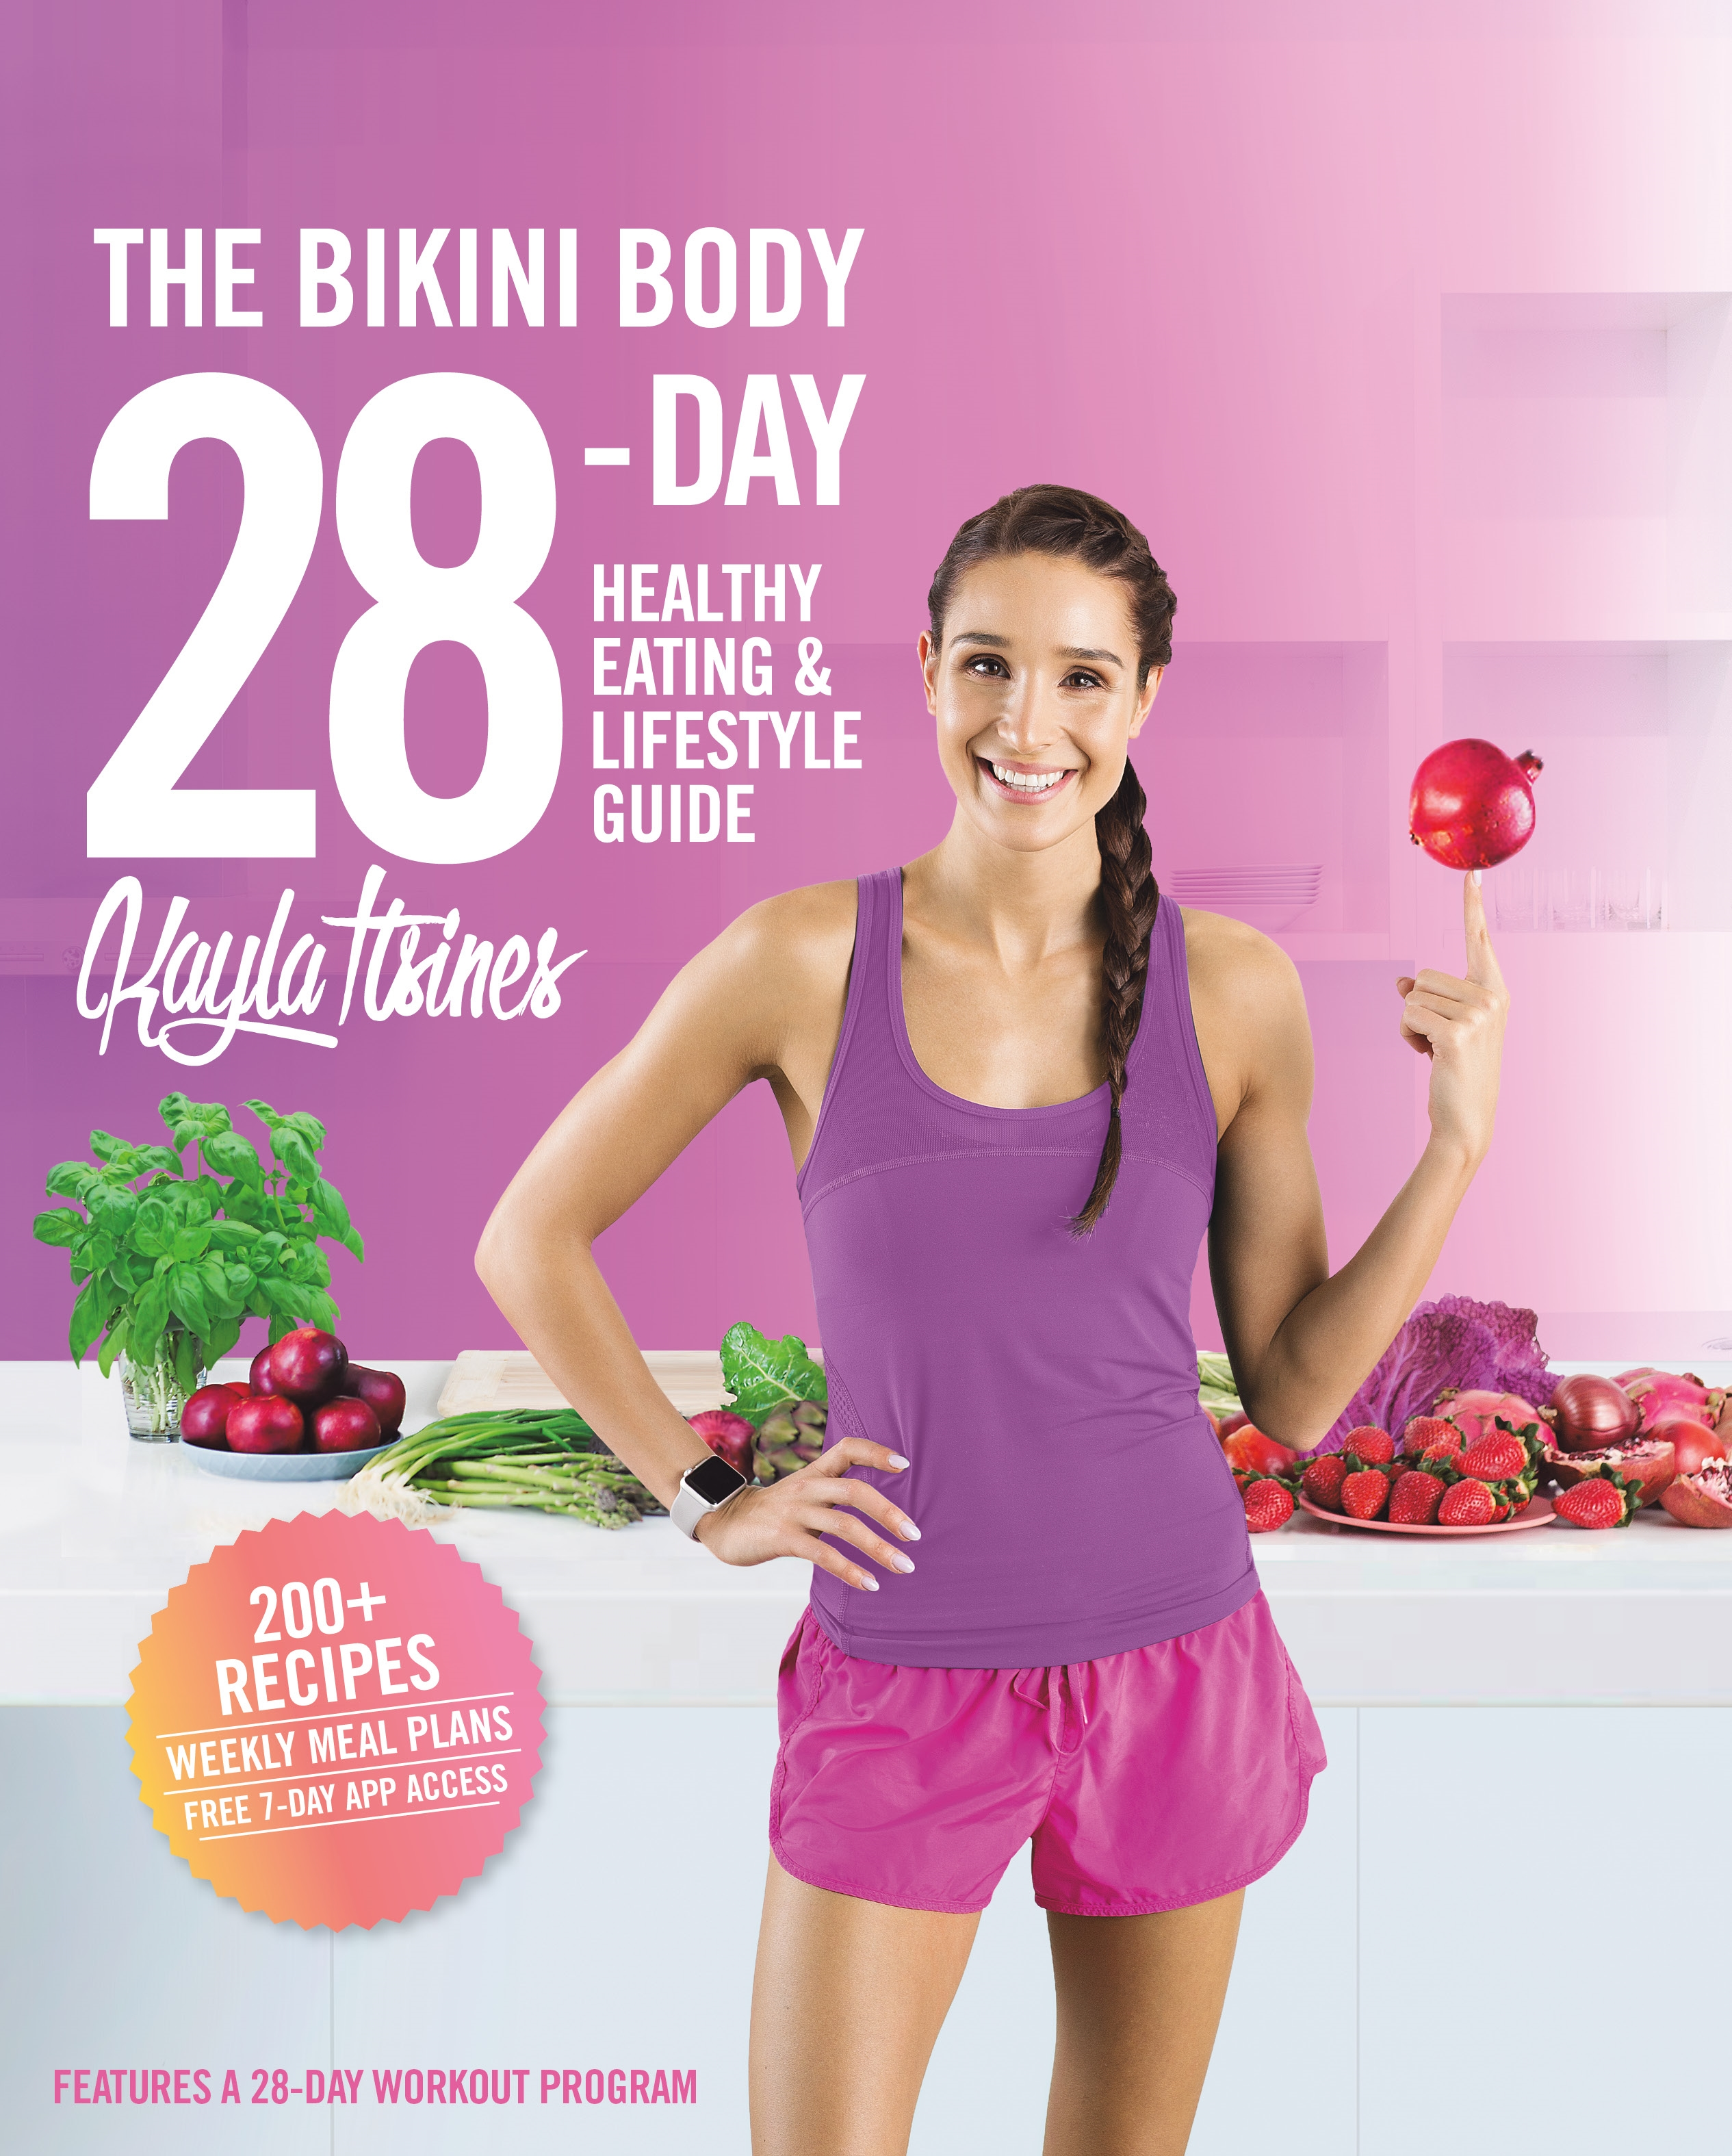 The bikini body 28-day healthy eating & lifestyle guide cover image